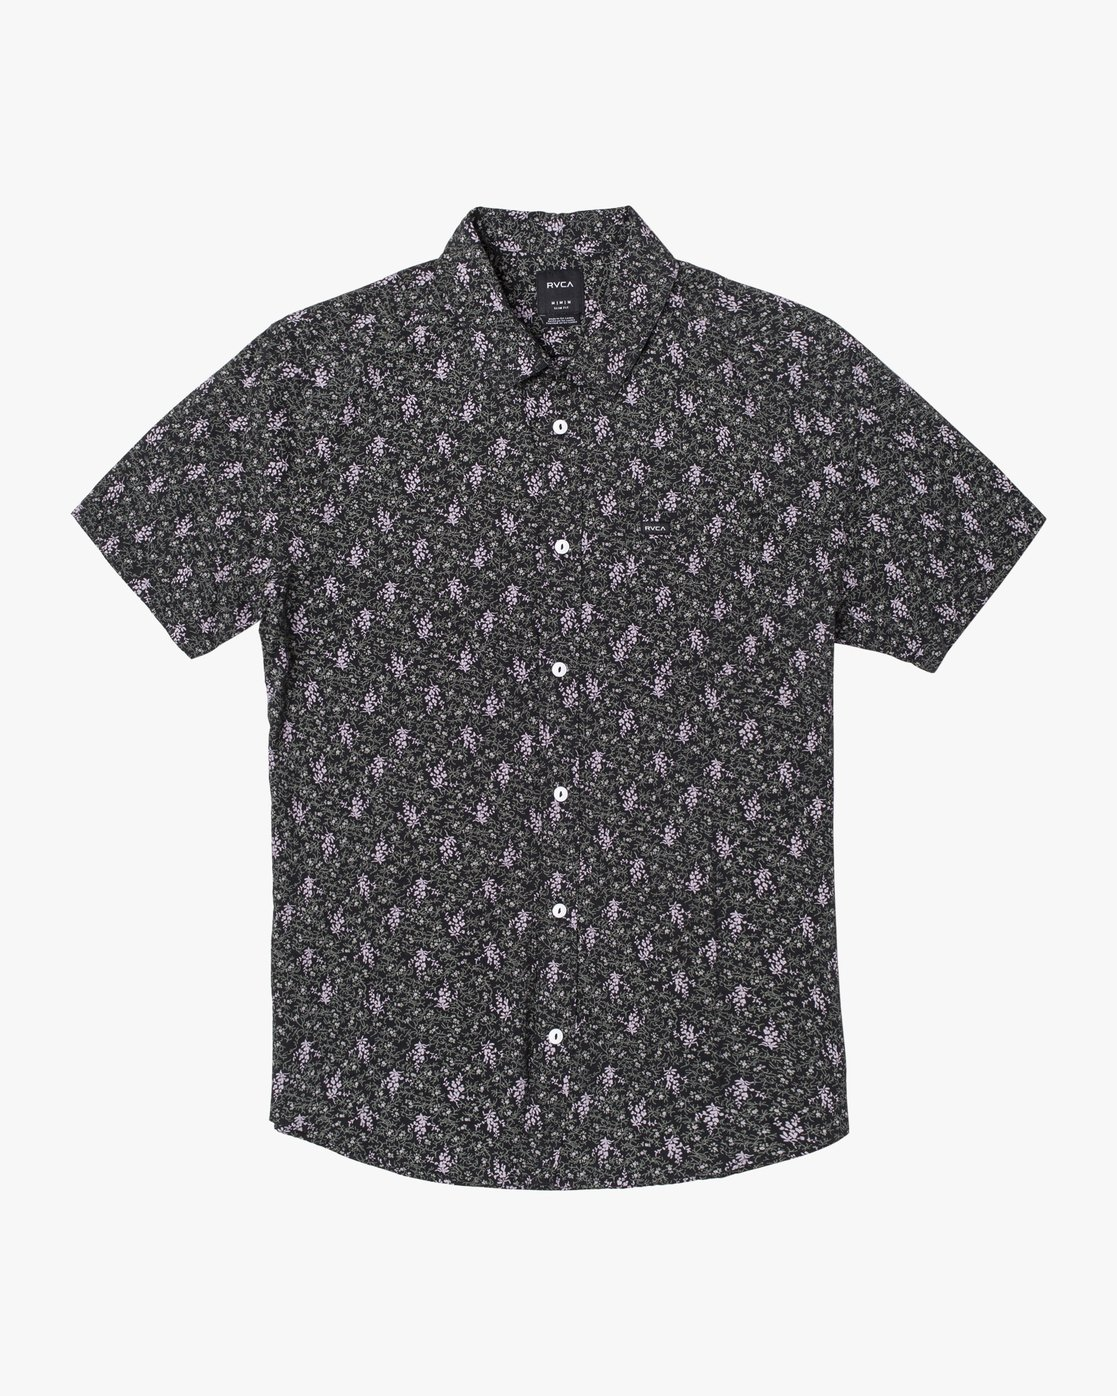 4 MONKBERRY FLORAL SHORT SLEEVE SHIRT Black M5163RMB RVCA